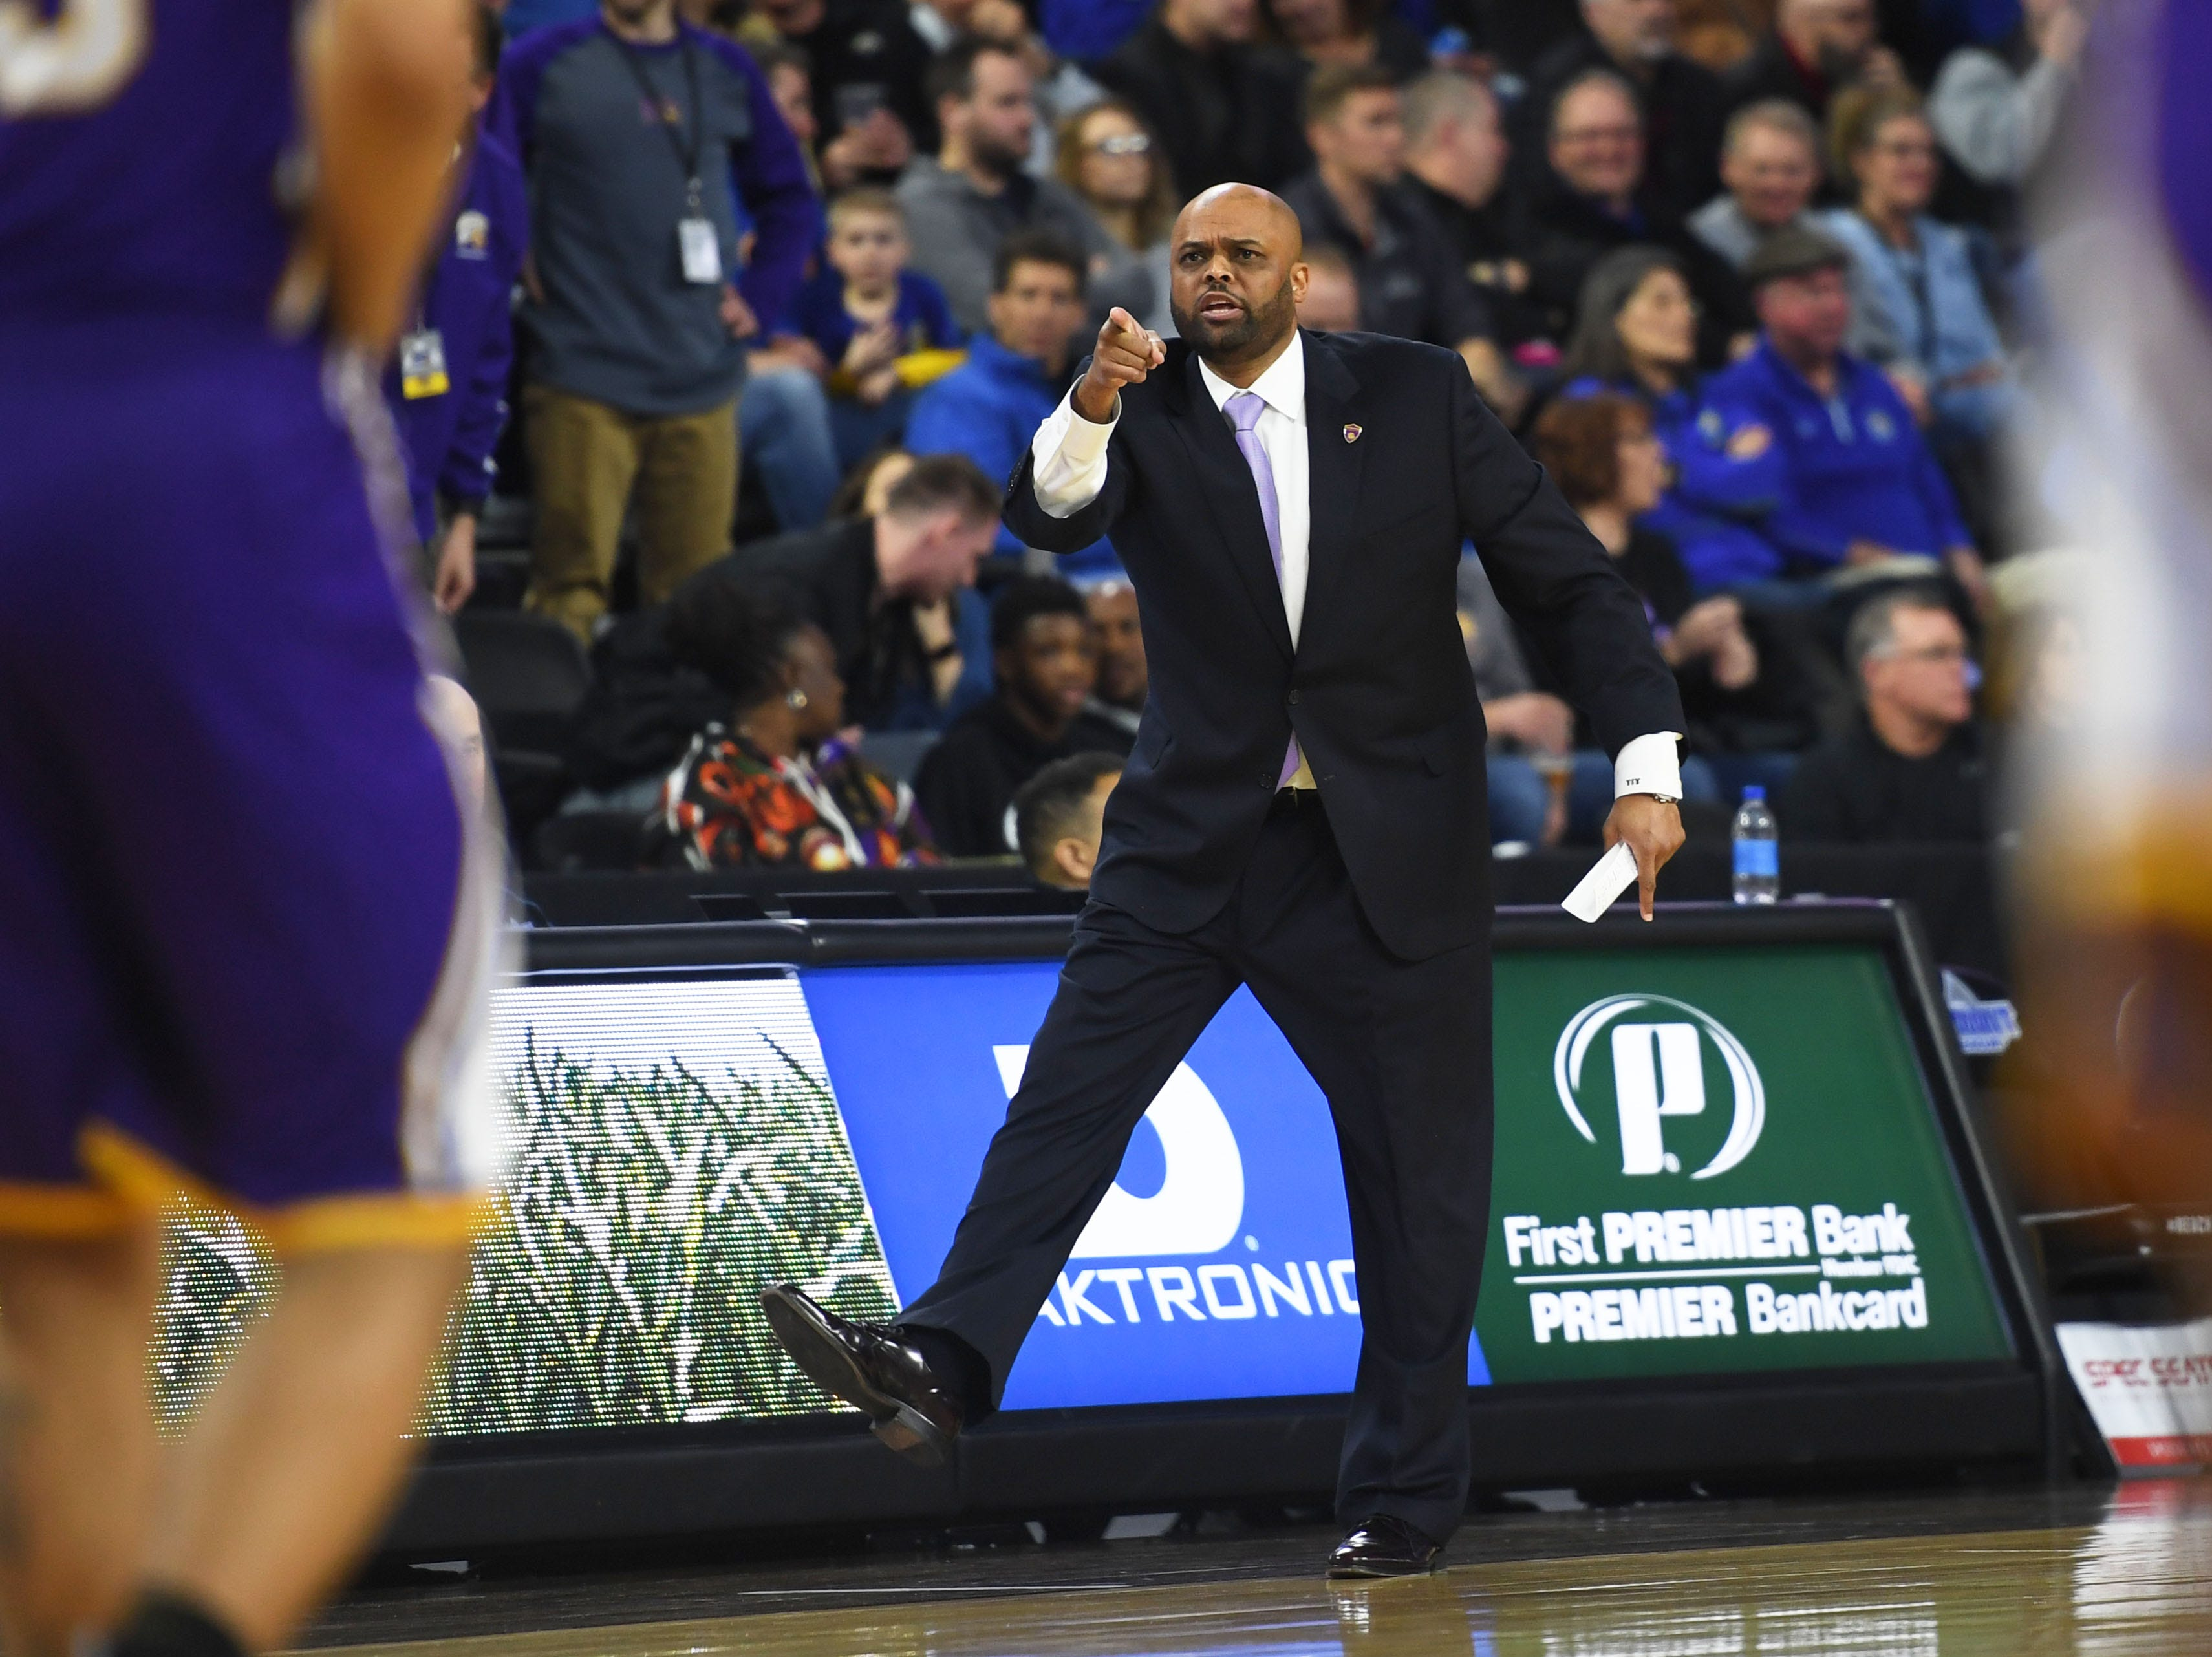 Western Illinois' head coach Billy Wright during the game against SDSU Saturday, March 9, in the Summit League tournament at the Denny Sanford Premier Center in Sioux Falls.